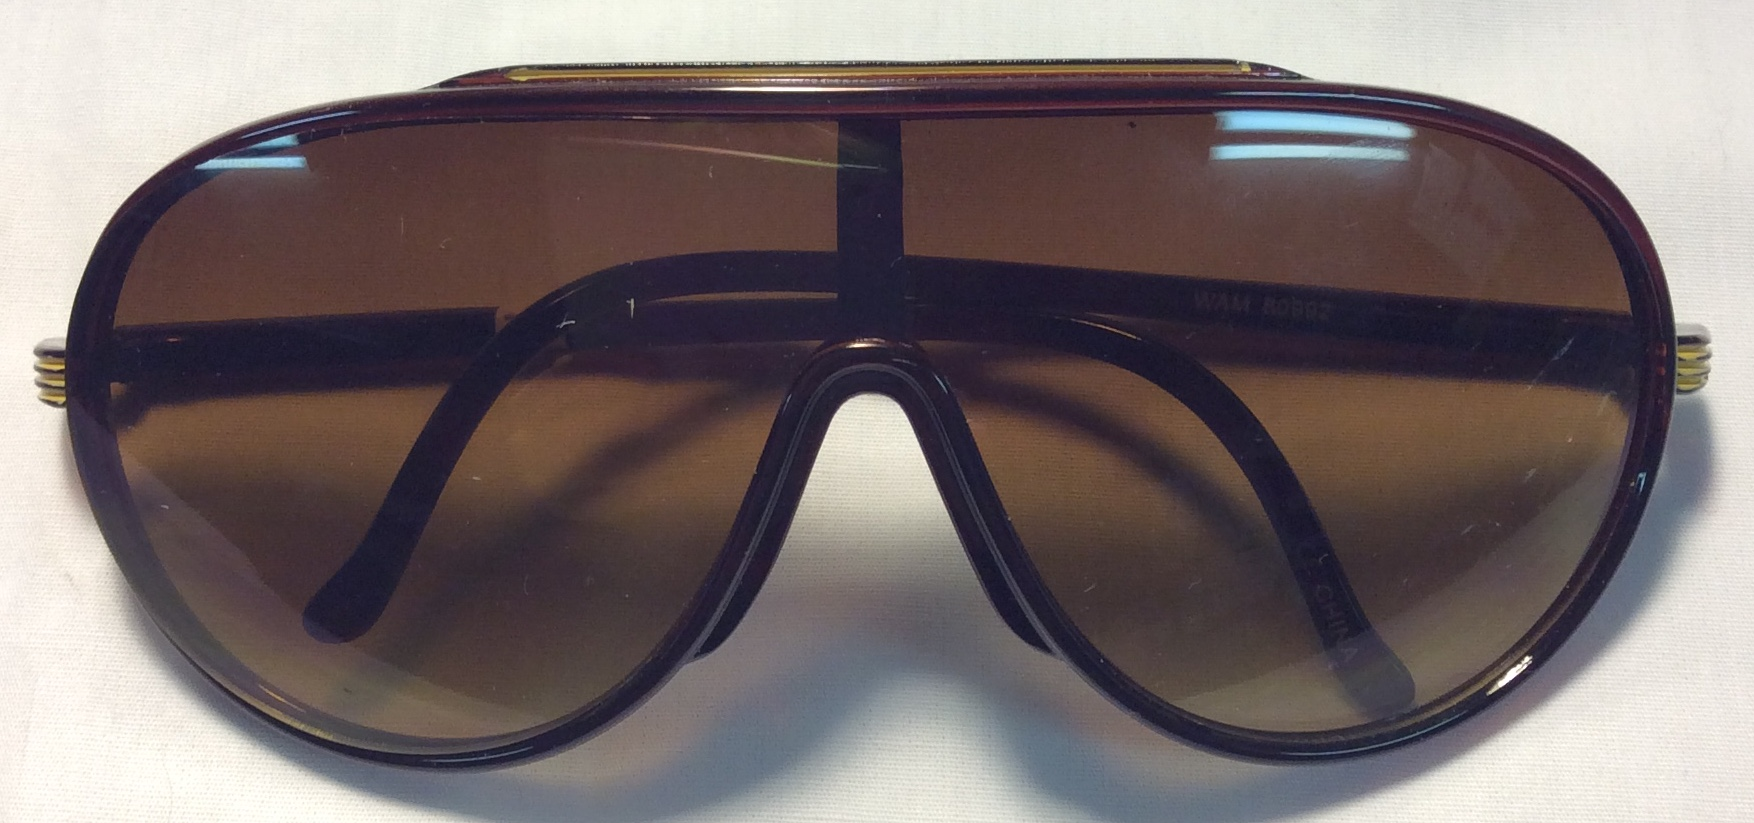 Brown frames with yellow line accent